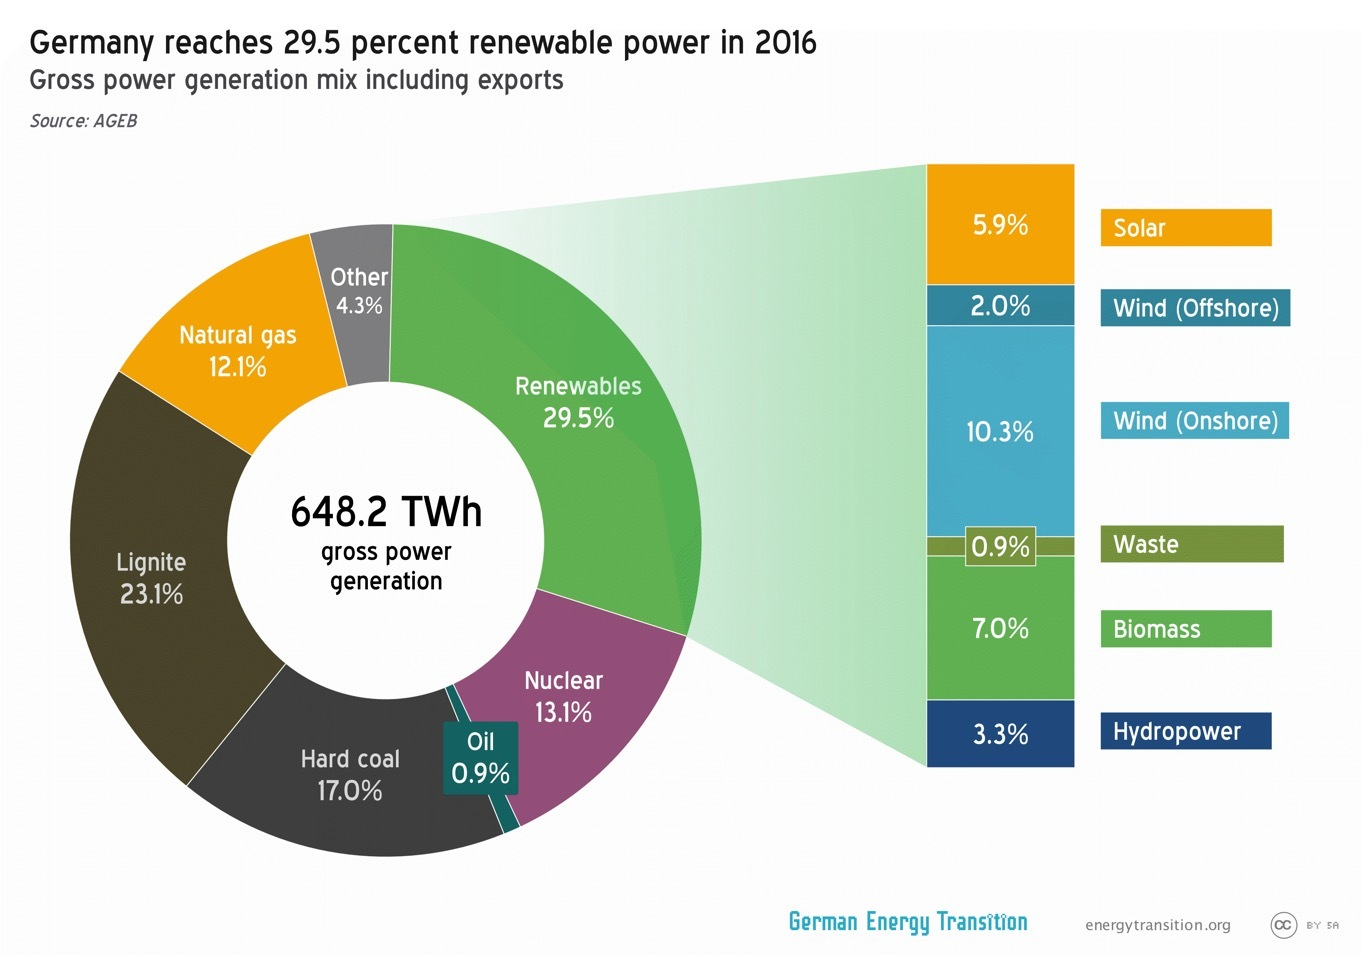 https://chinadialogue-production.s3.amazonaws.com/uploads/content_image/content_image/3339/germany_energy_policy_1.jpg